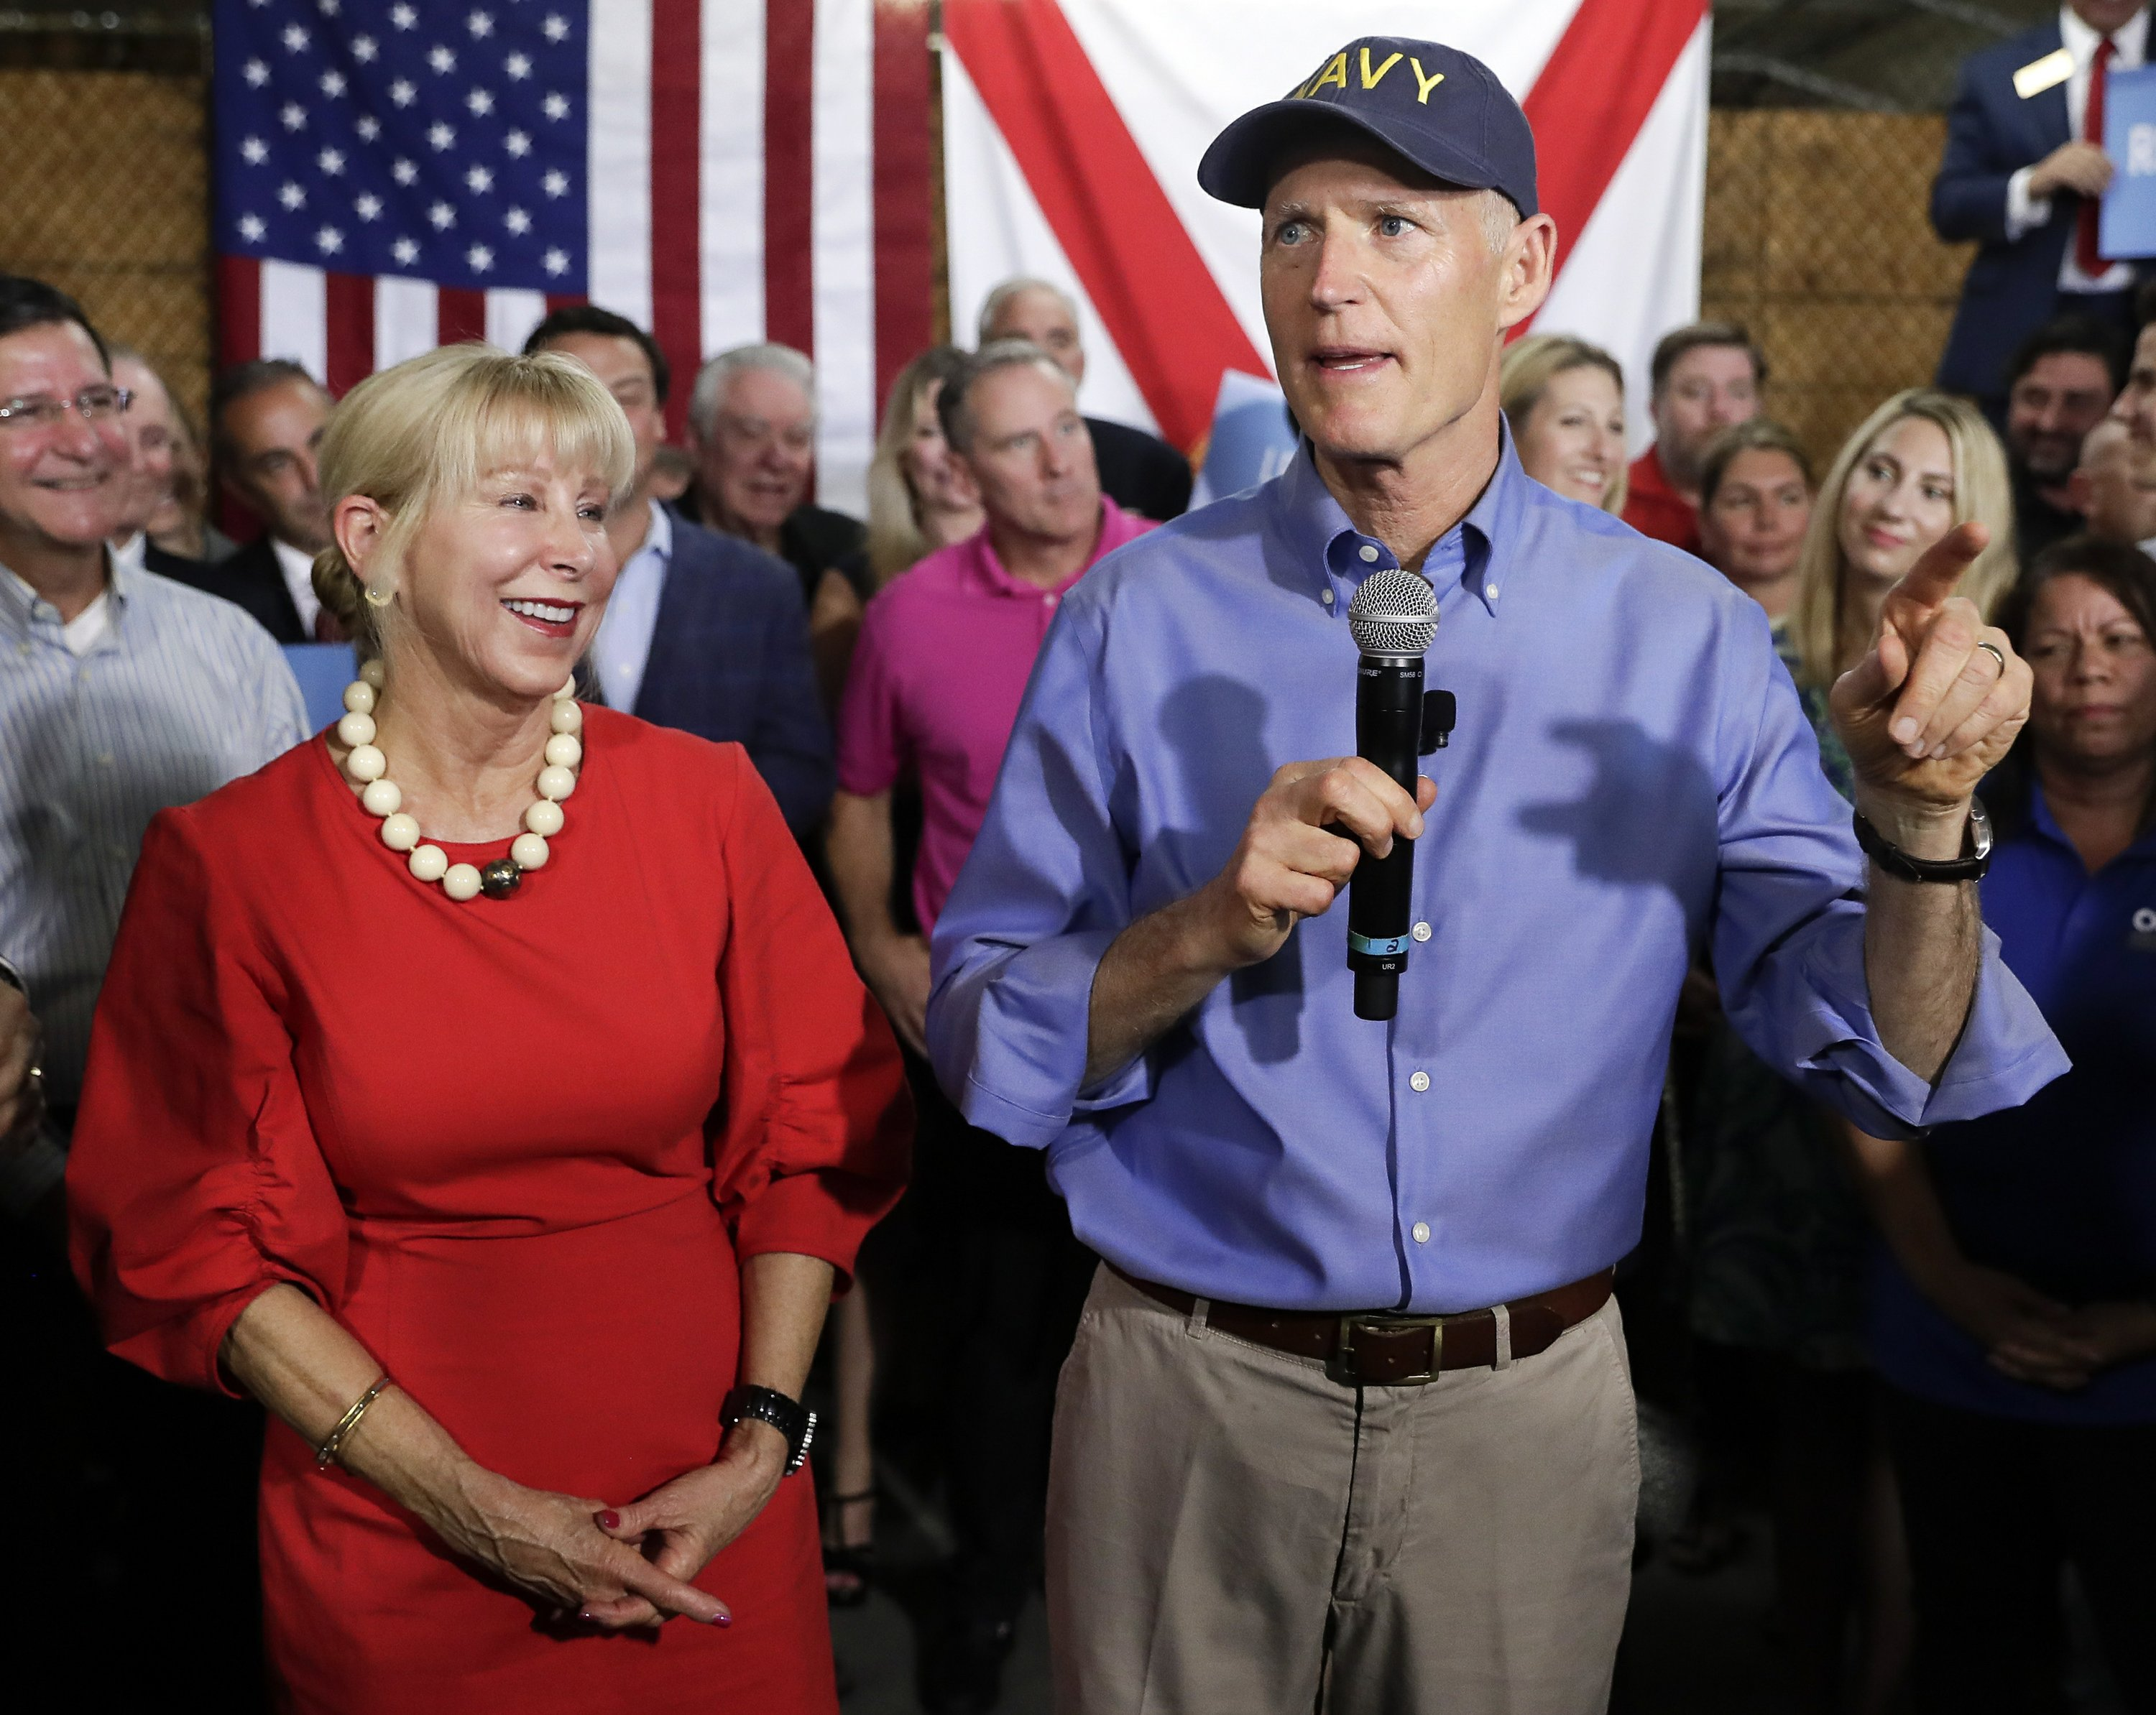 Questions of conflict mount over Florida governor's finances